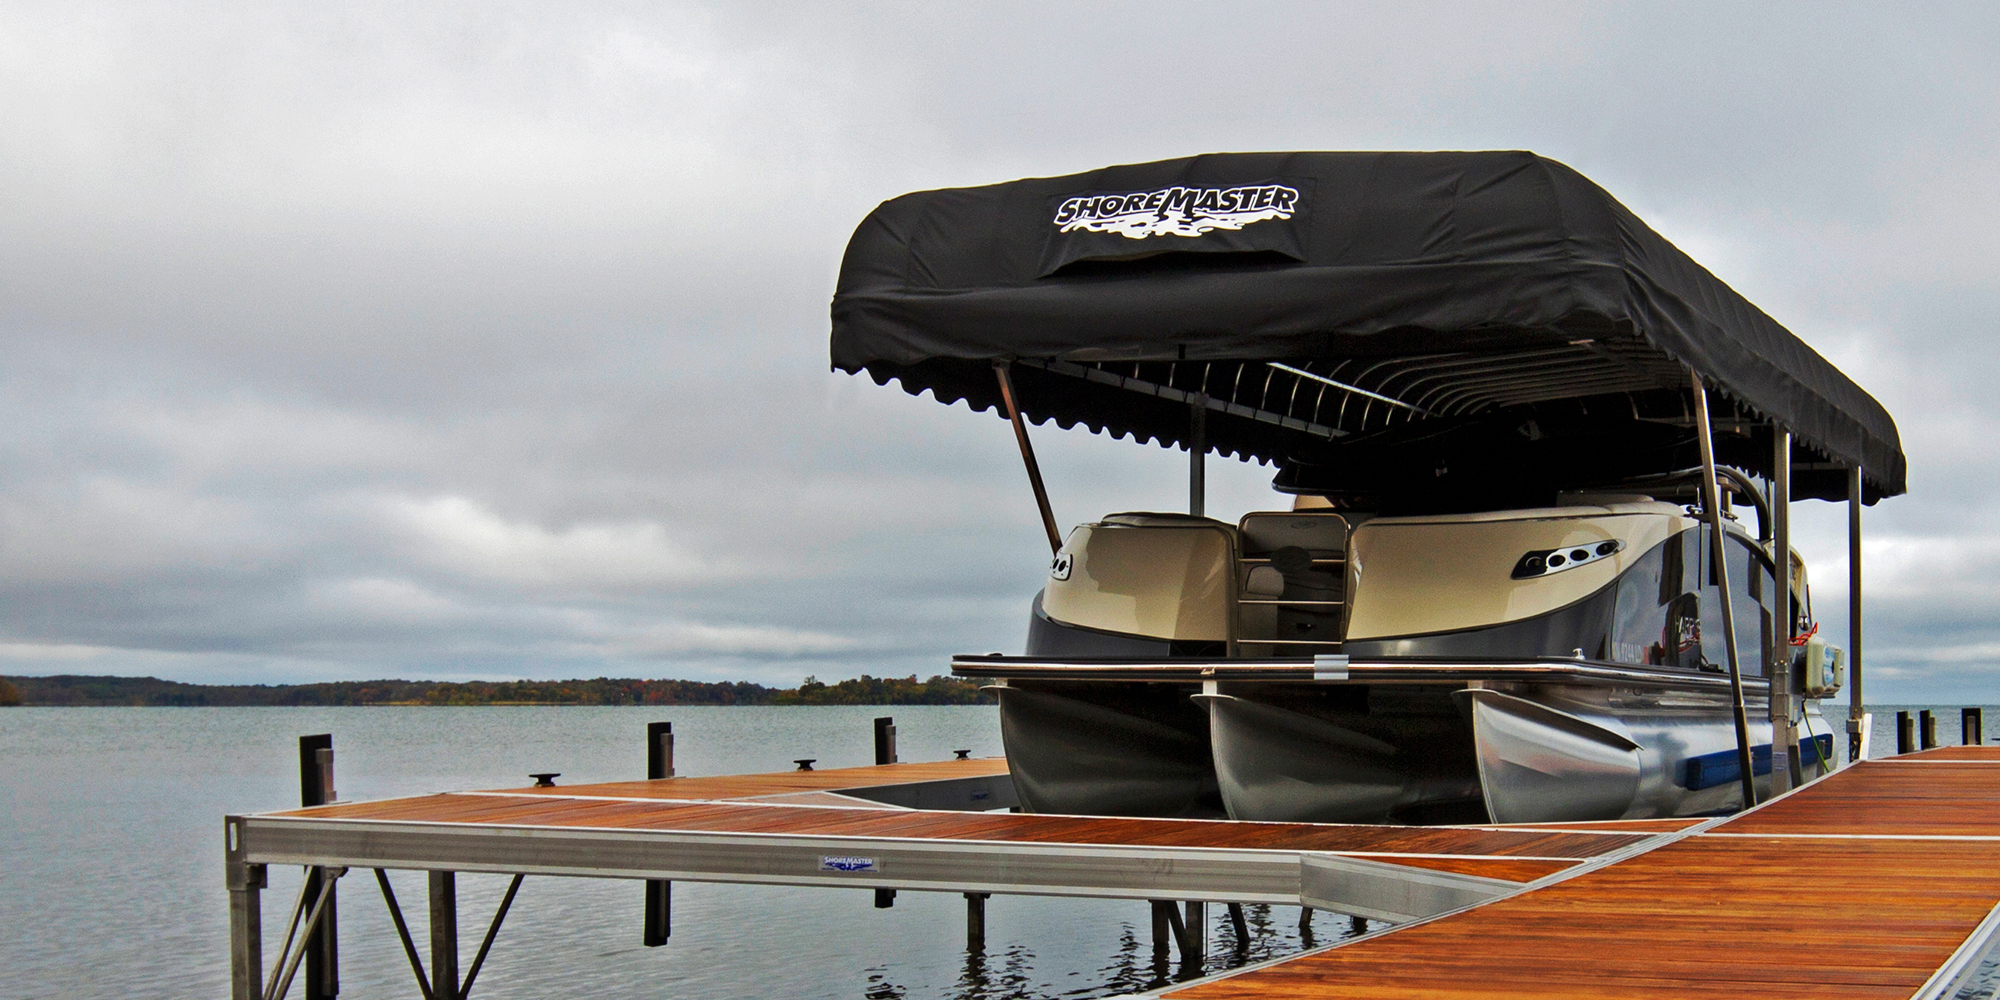 ShoreMaster Vertical Lift with Black Canopy and Infinity RS4 Dock with IPE Decking